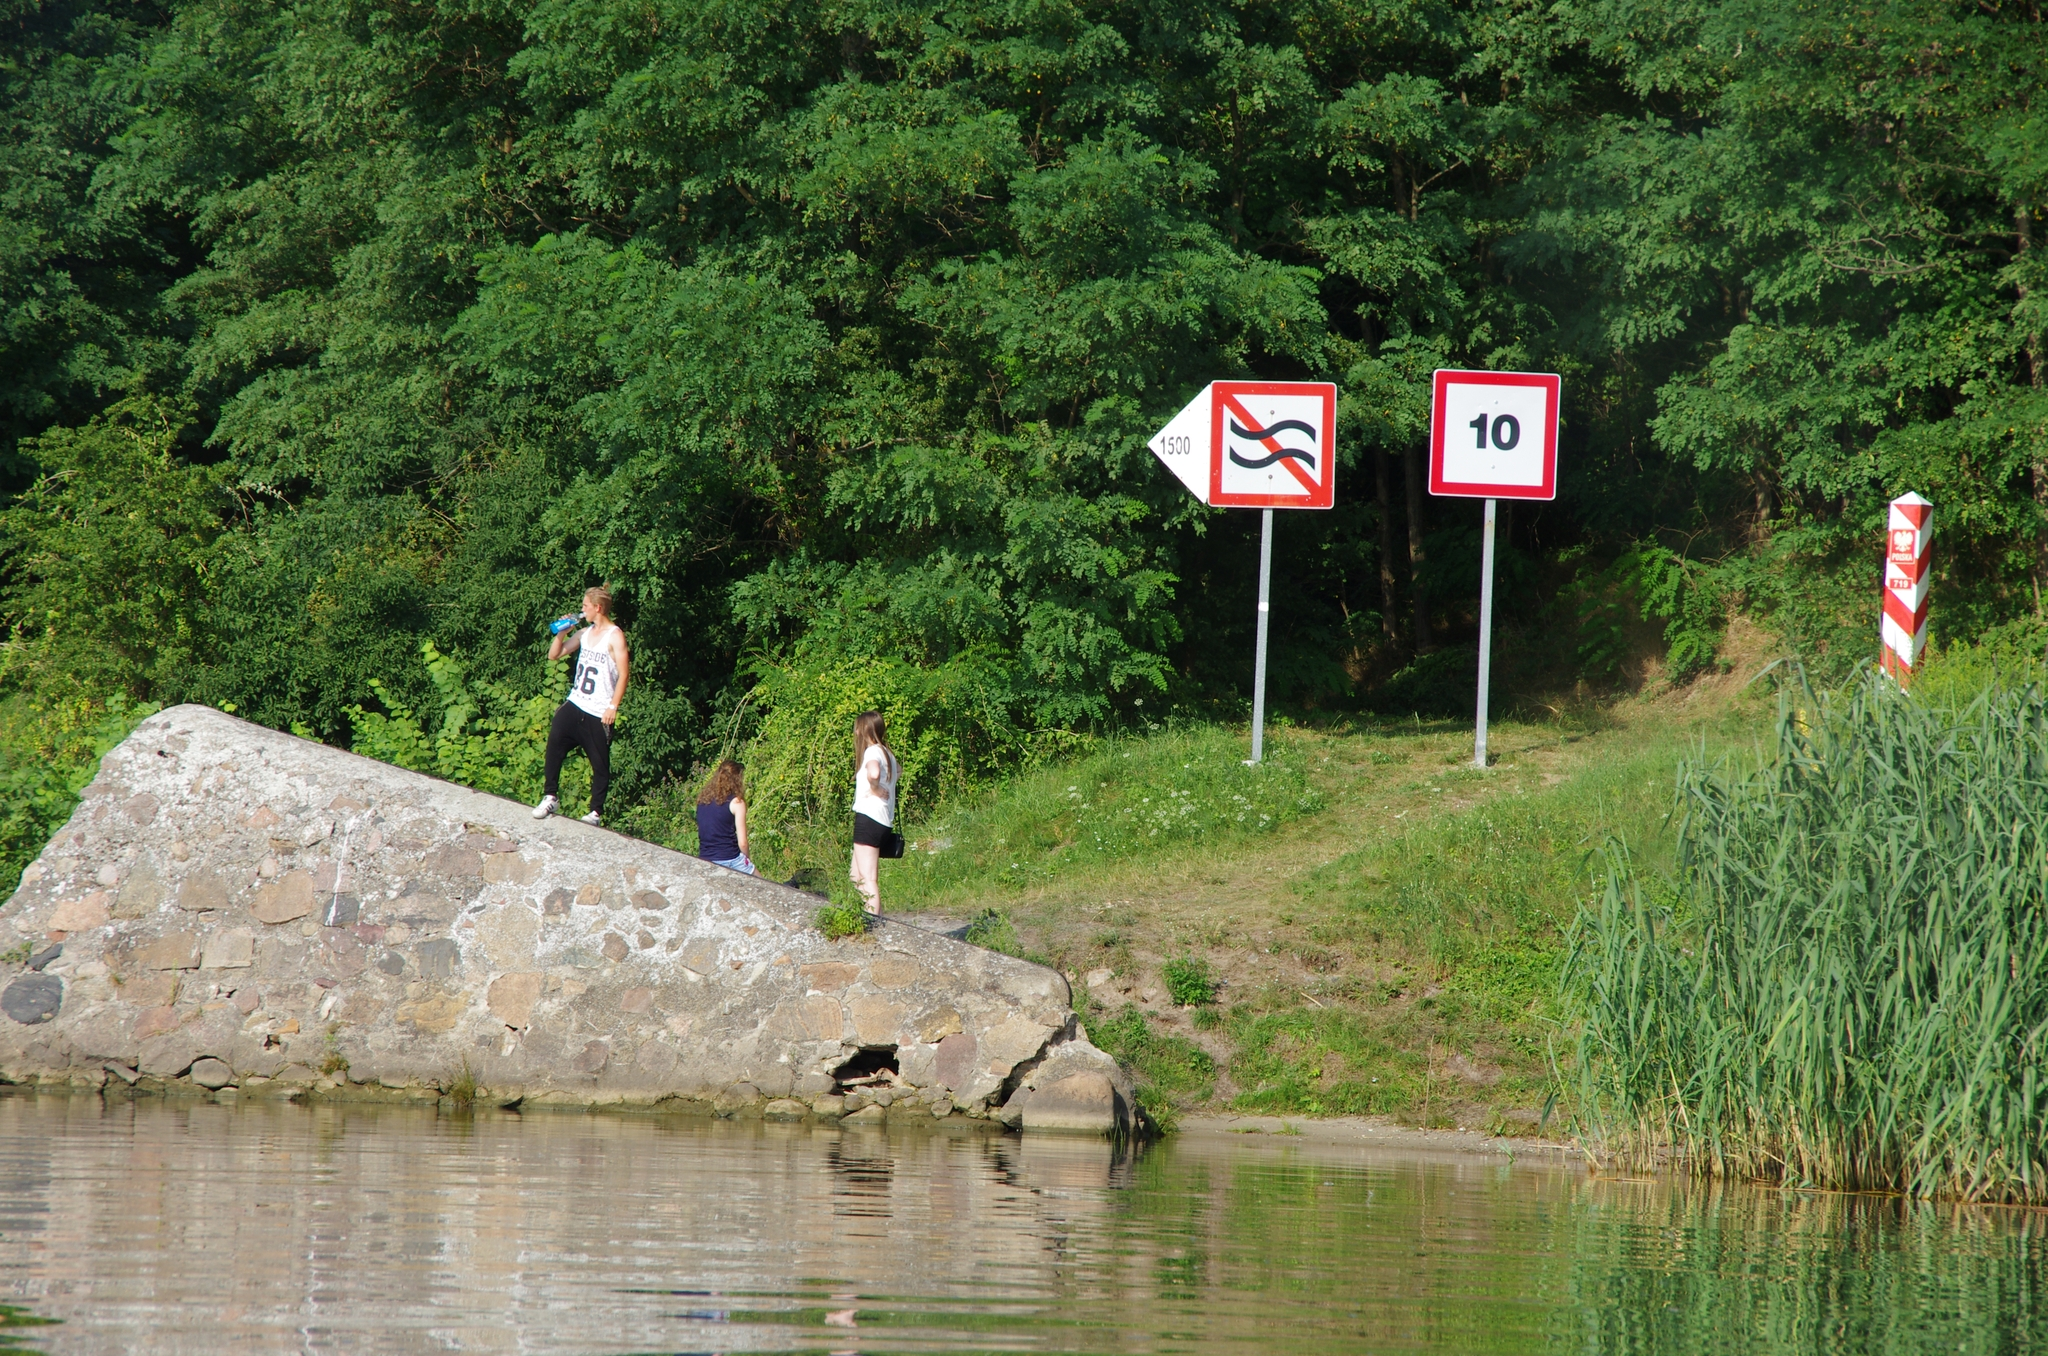 kayaking-odra-east-and-west_16-50-48_25-07-2016